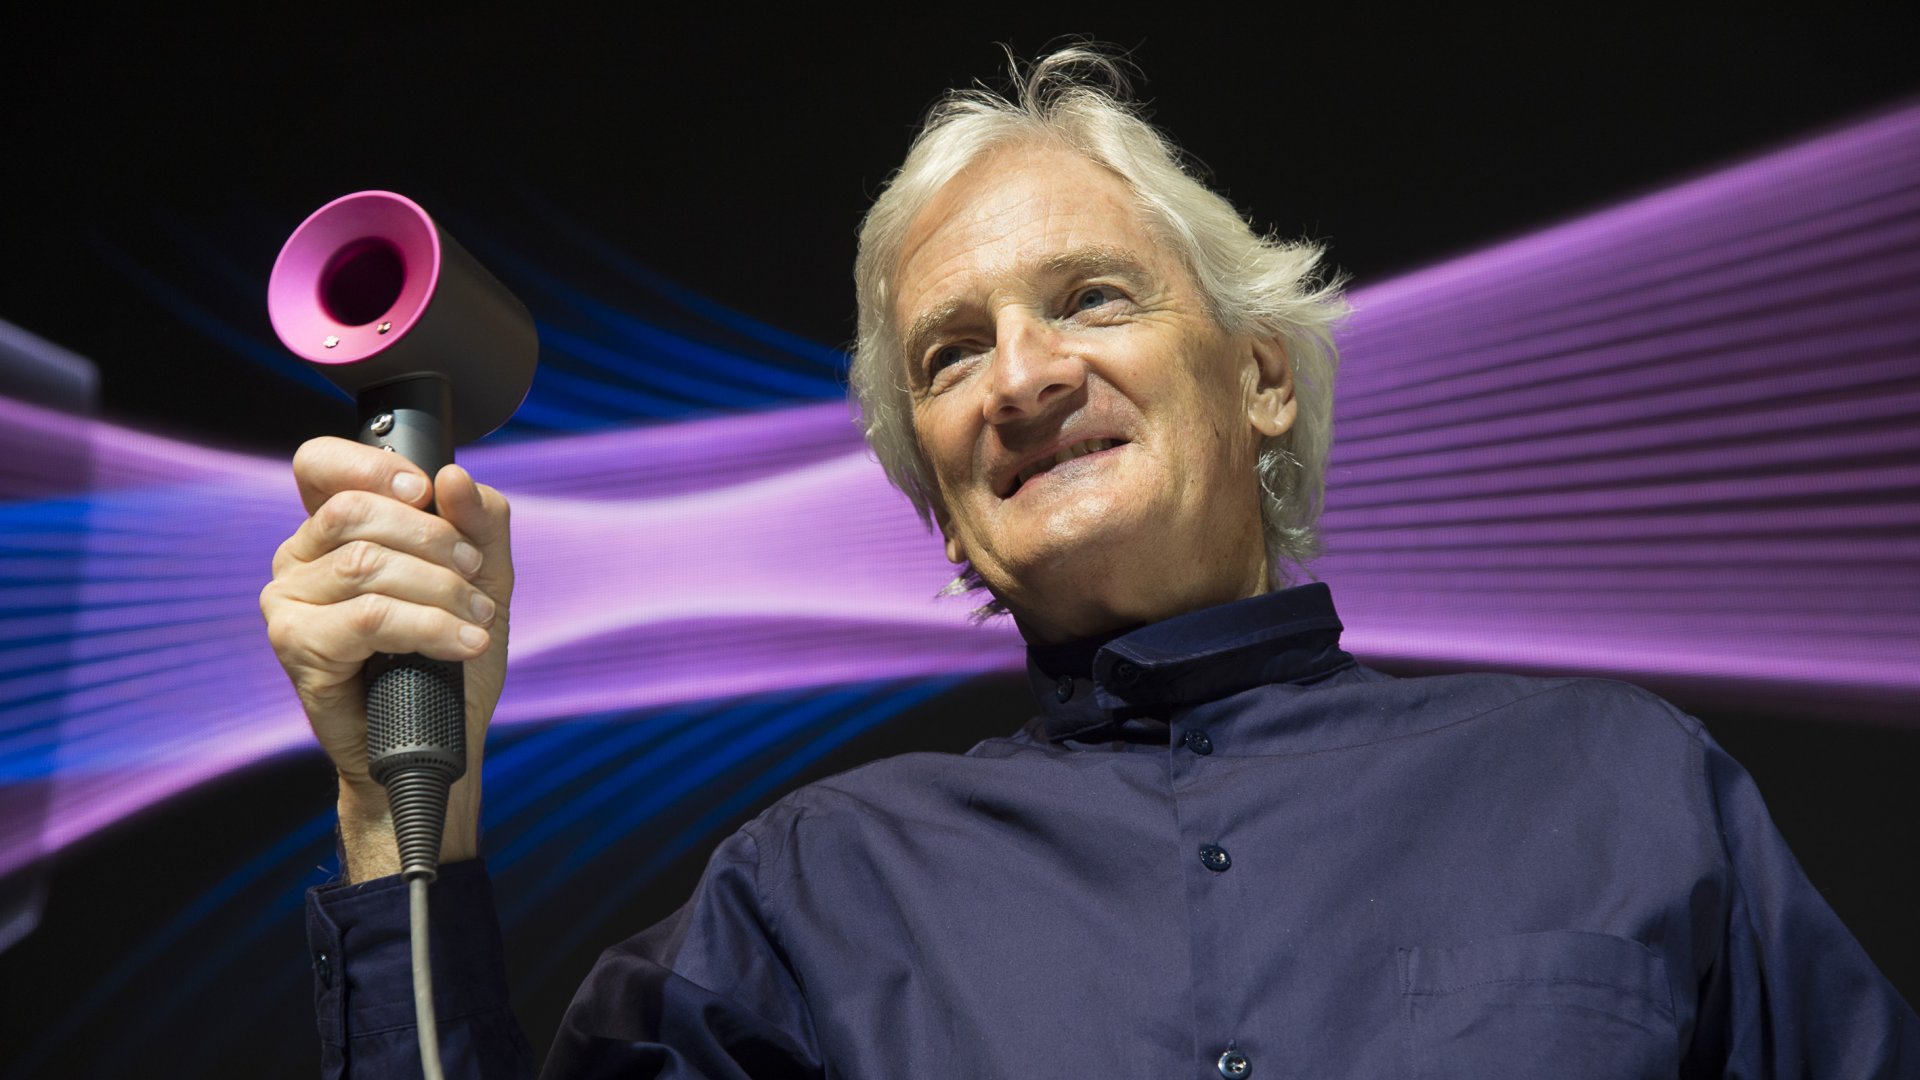 Dyson's Sleek New Product Will Blow You Away